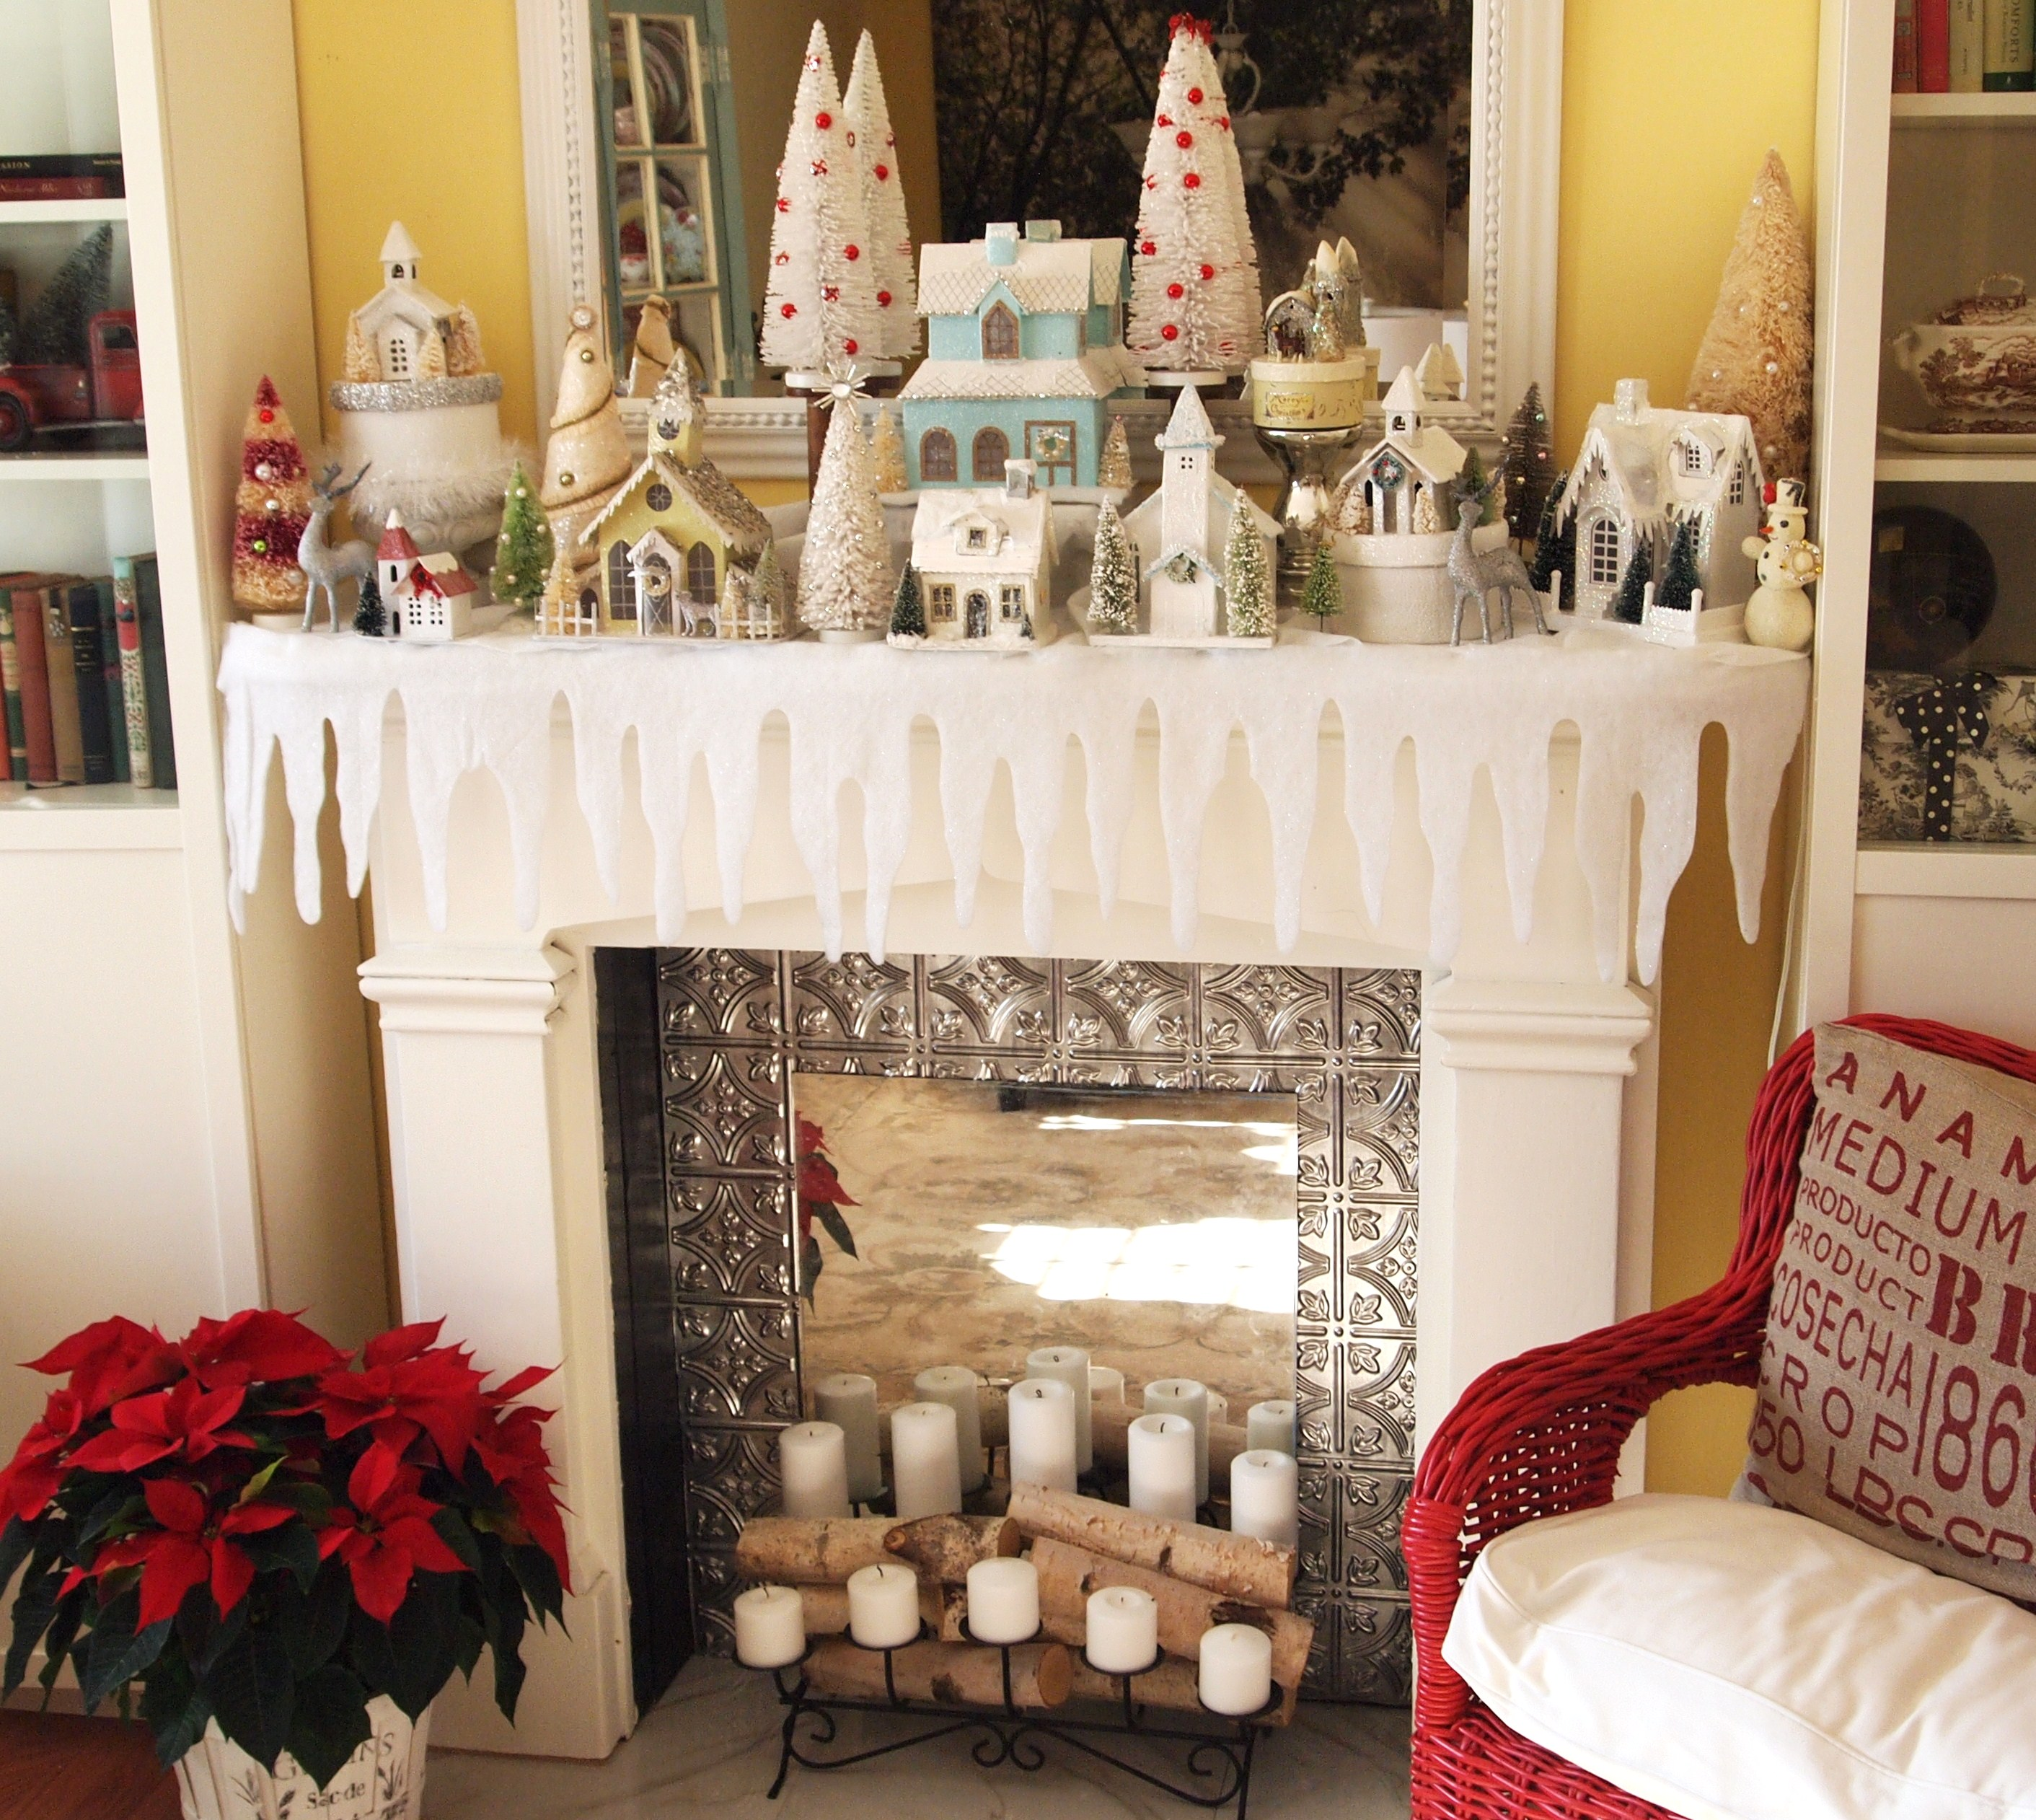 Christmas decoration ideas for a small house - Ways To Decorate Your House For Christmas Roselawnlutheran